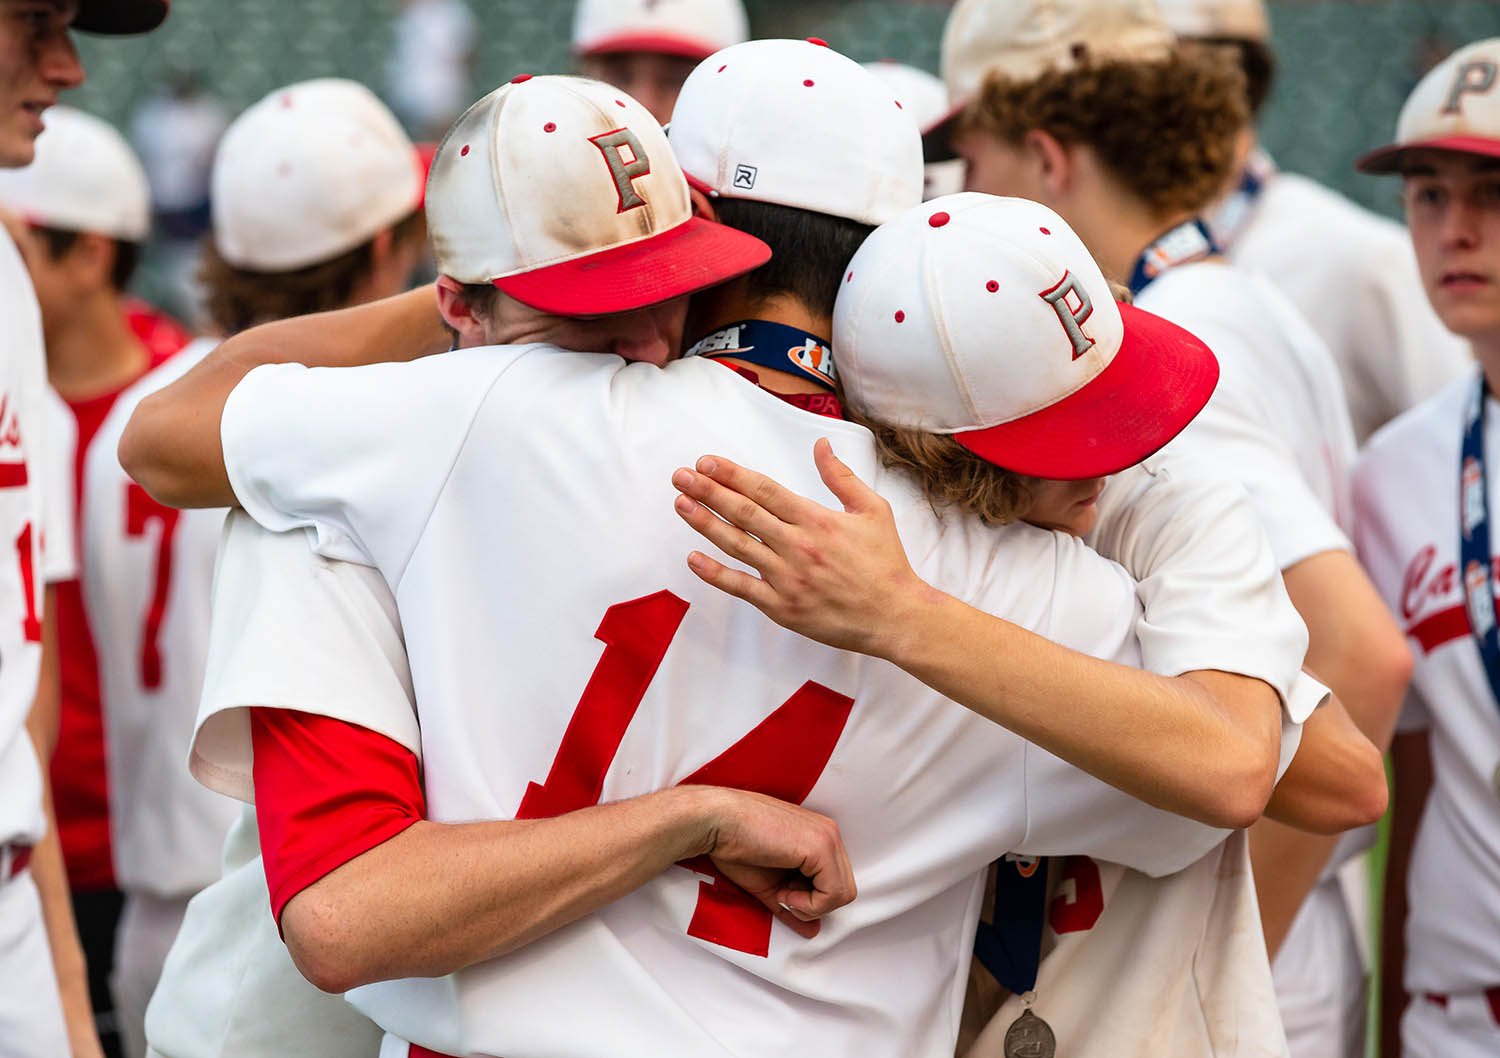 Pleasant Plains' Corgan Greer (13) hugs Joe Lee (14) and Reese Snell (3) after the Cardinals were defeated by Teutopolis 12-6 in the IHSA Class 2A State Championship game at Dozer Park, Saturday, June 1, 2019, in Peoria, Ill. [Justin L. Fowler/The State Journal-Register]